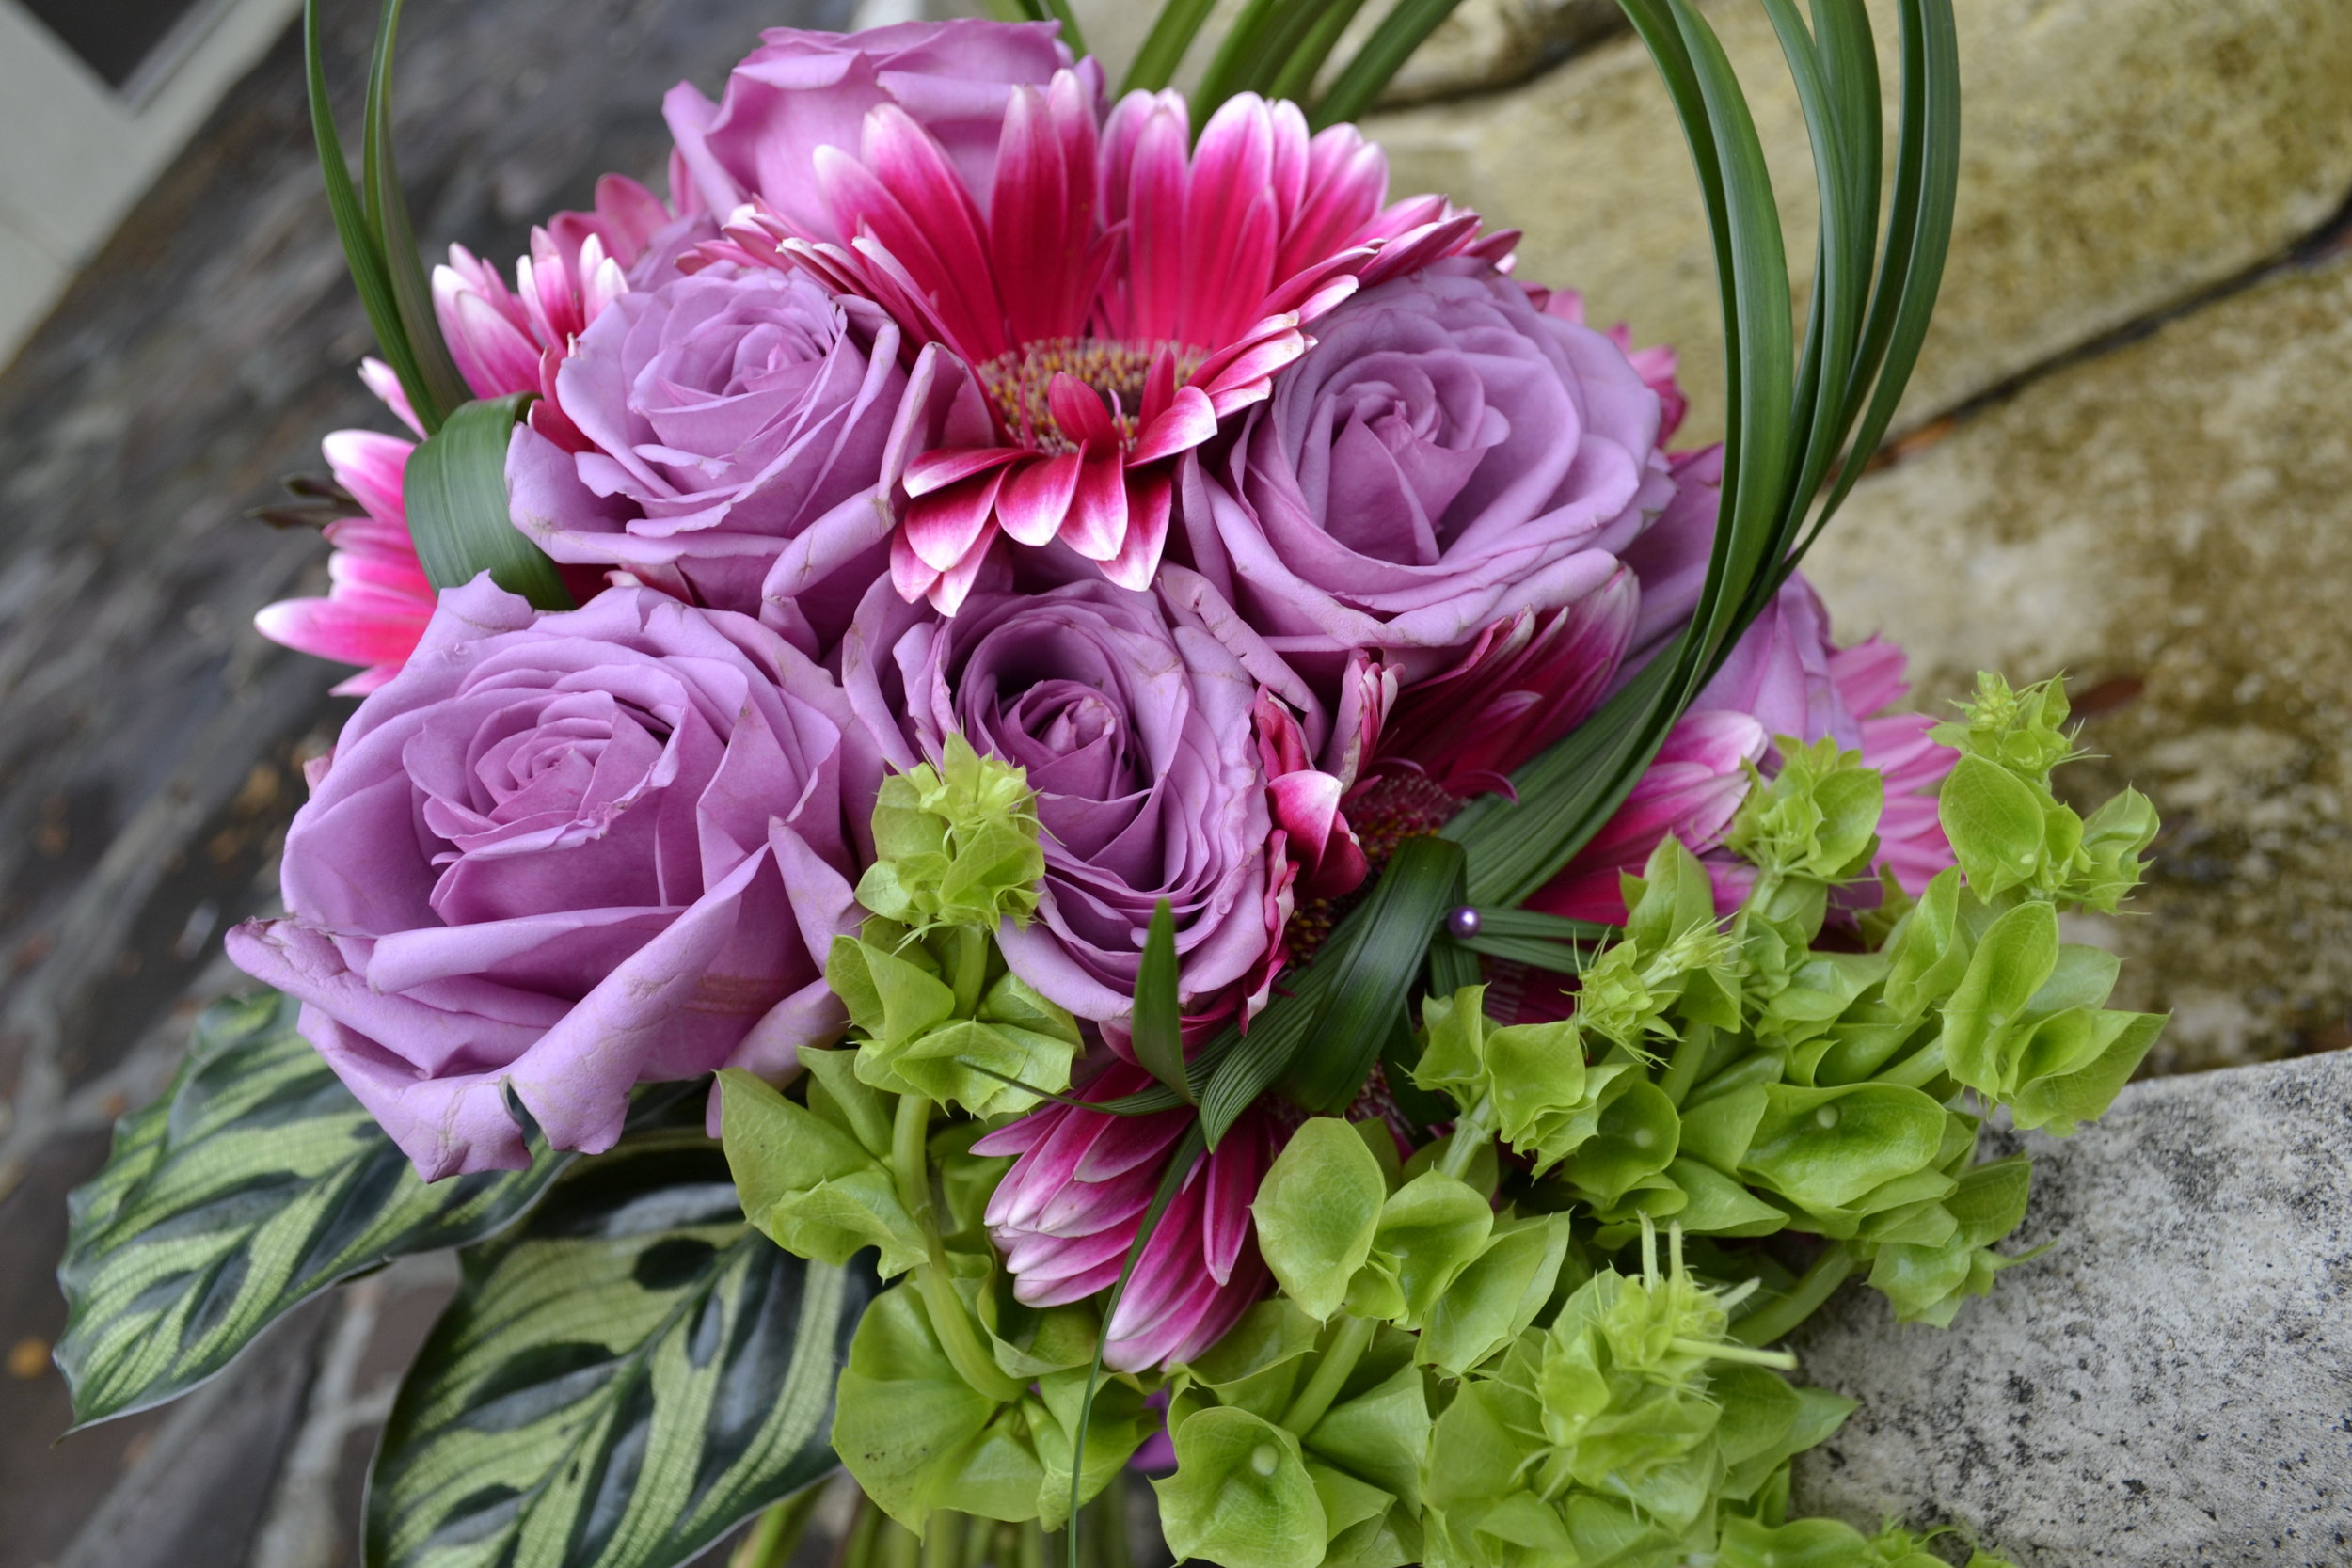 A vivid color like the hot pink floral focal points add a pop of interest to the lavender and green bouquet.